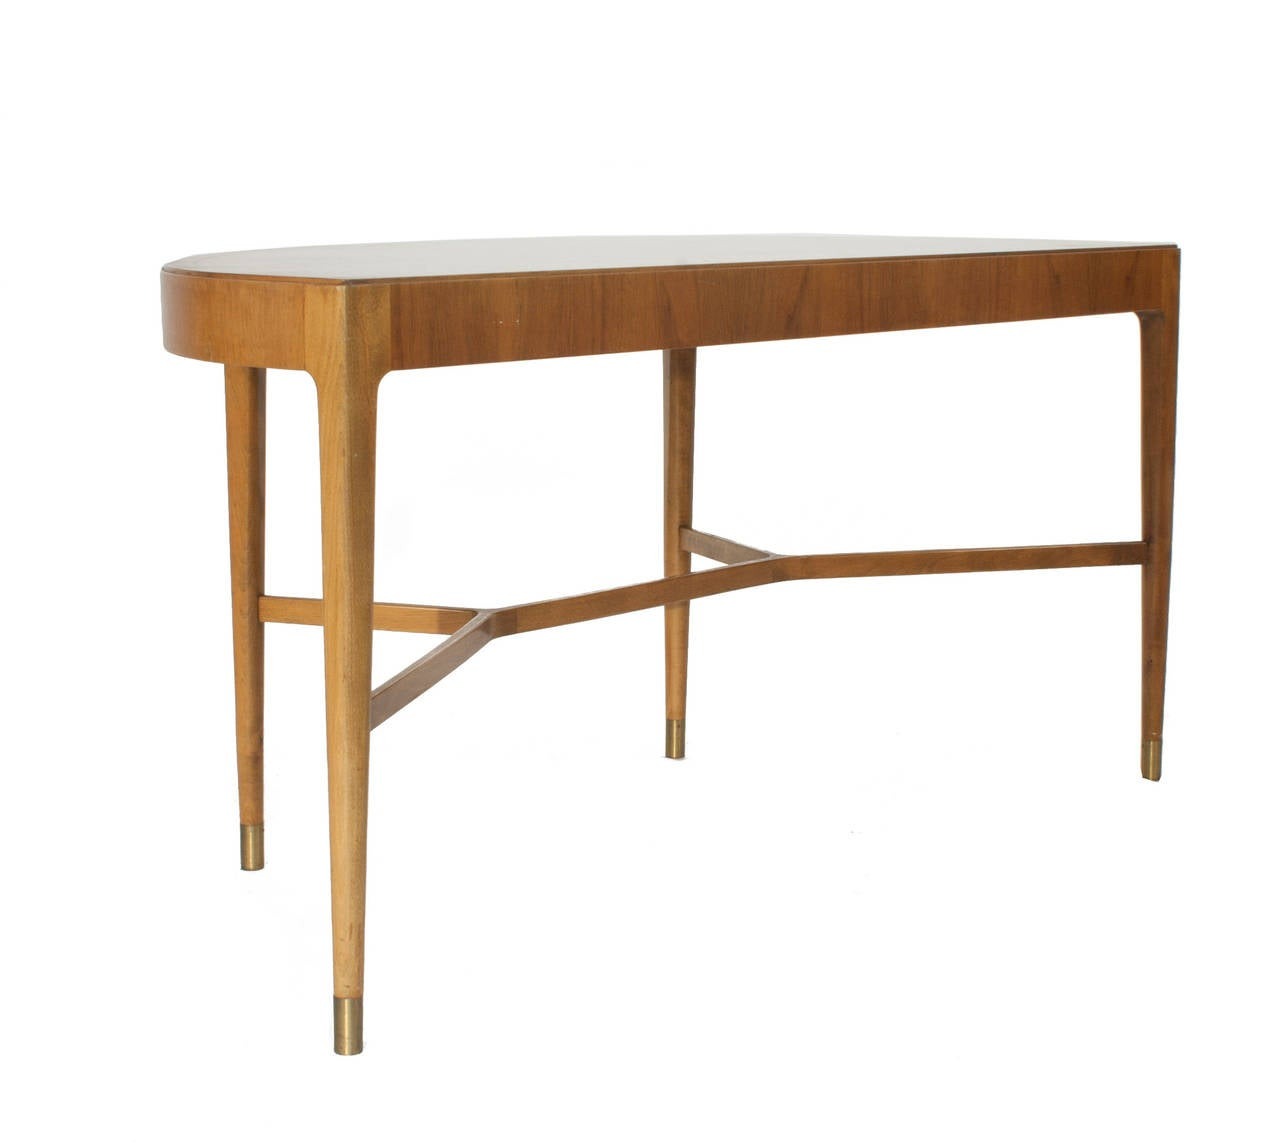 this demilune table is no longer available